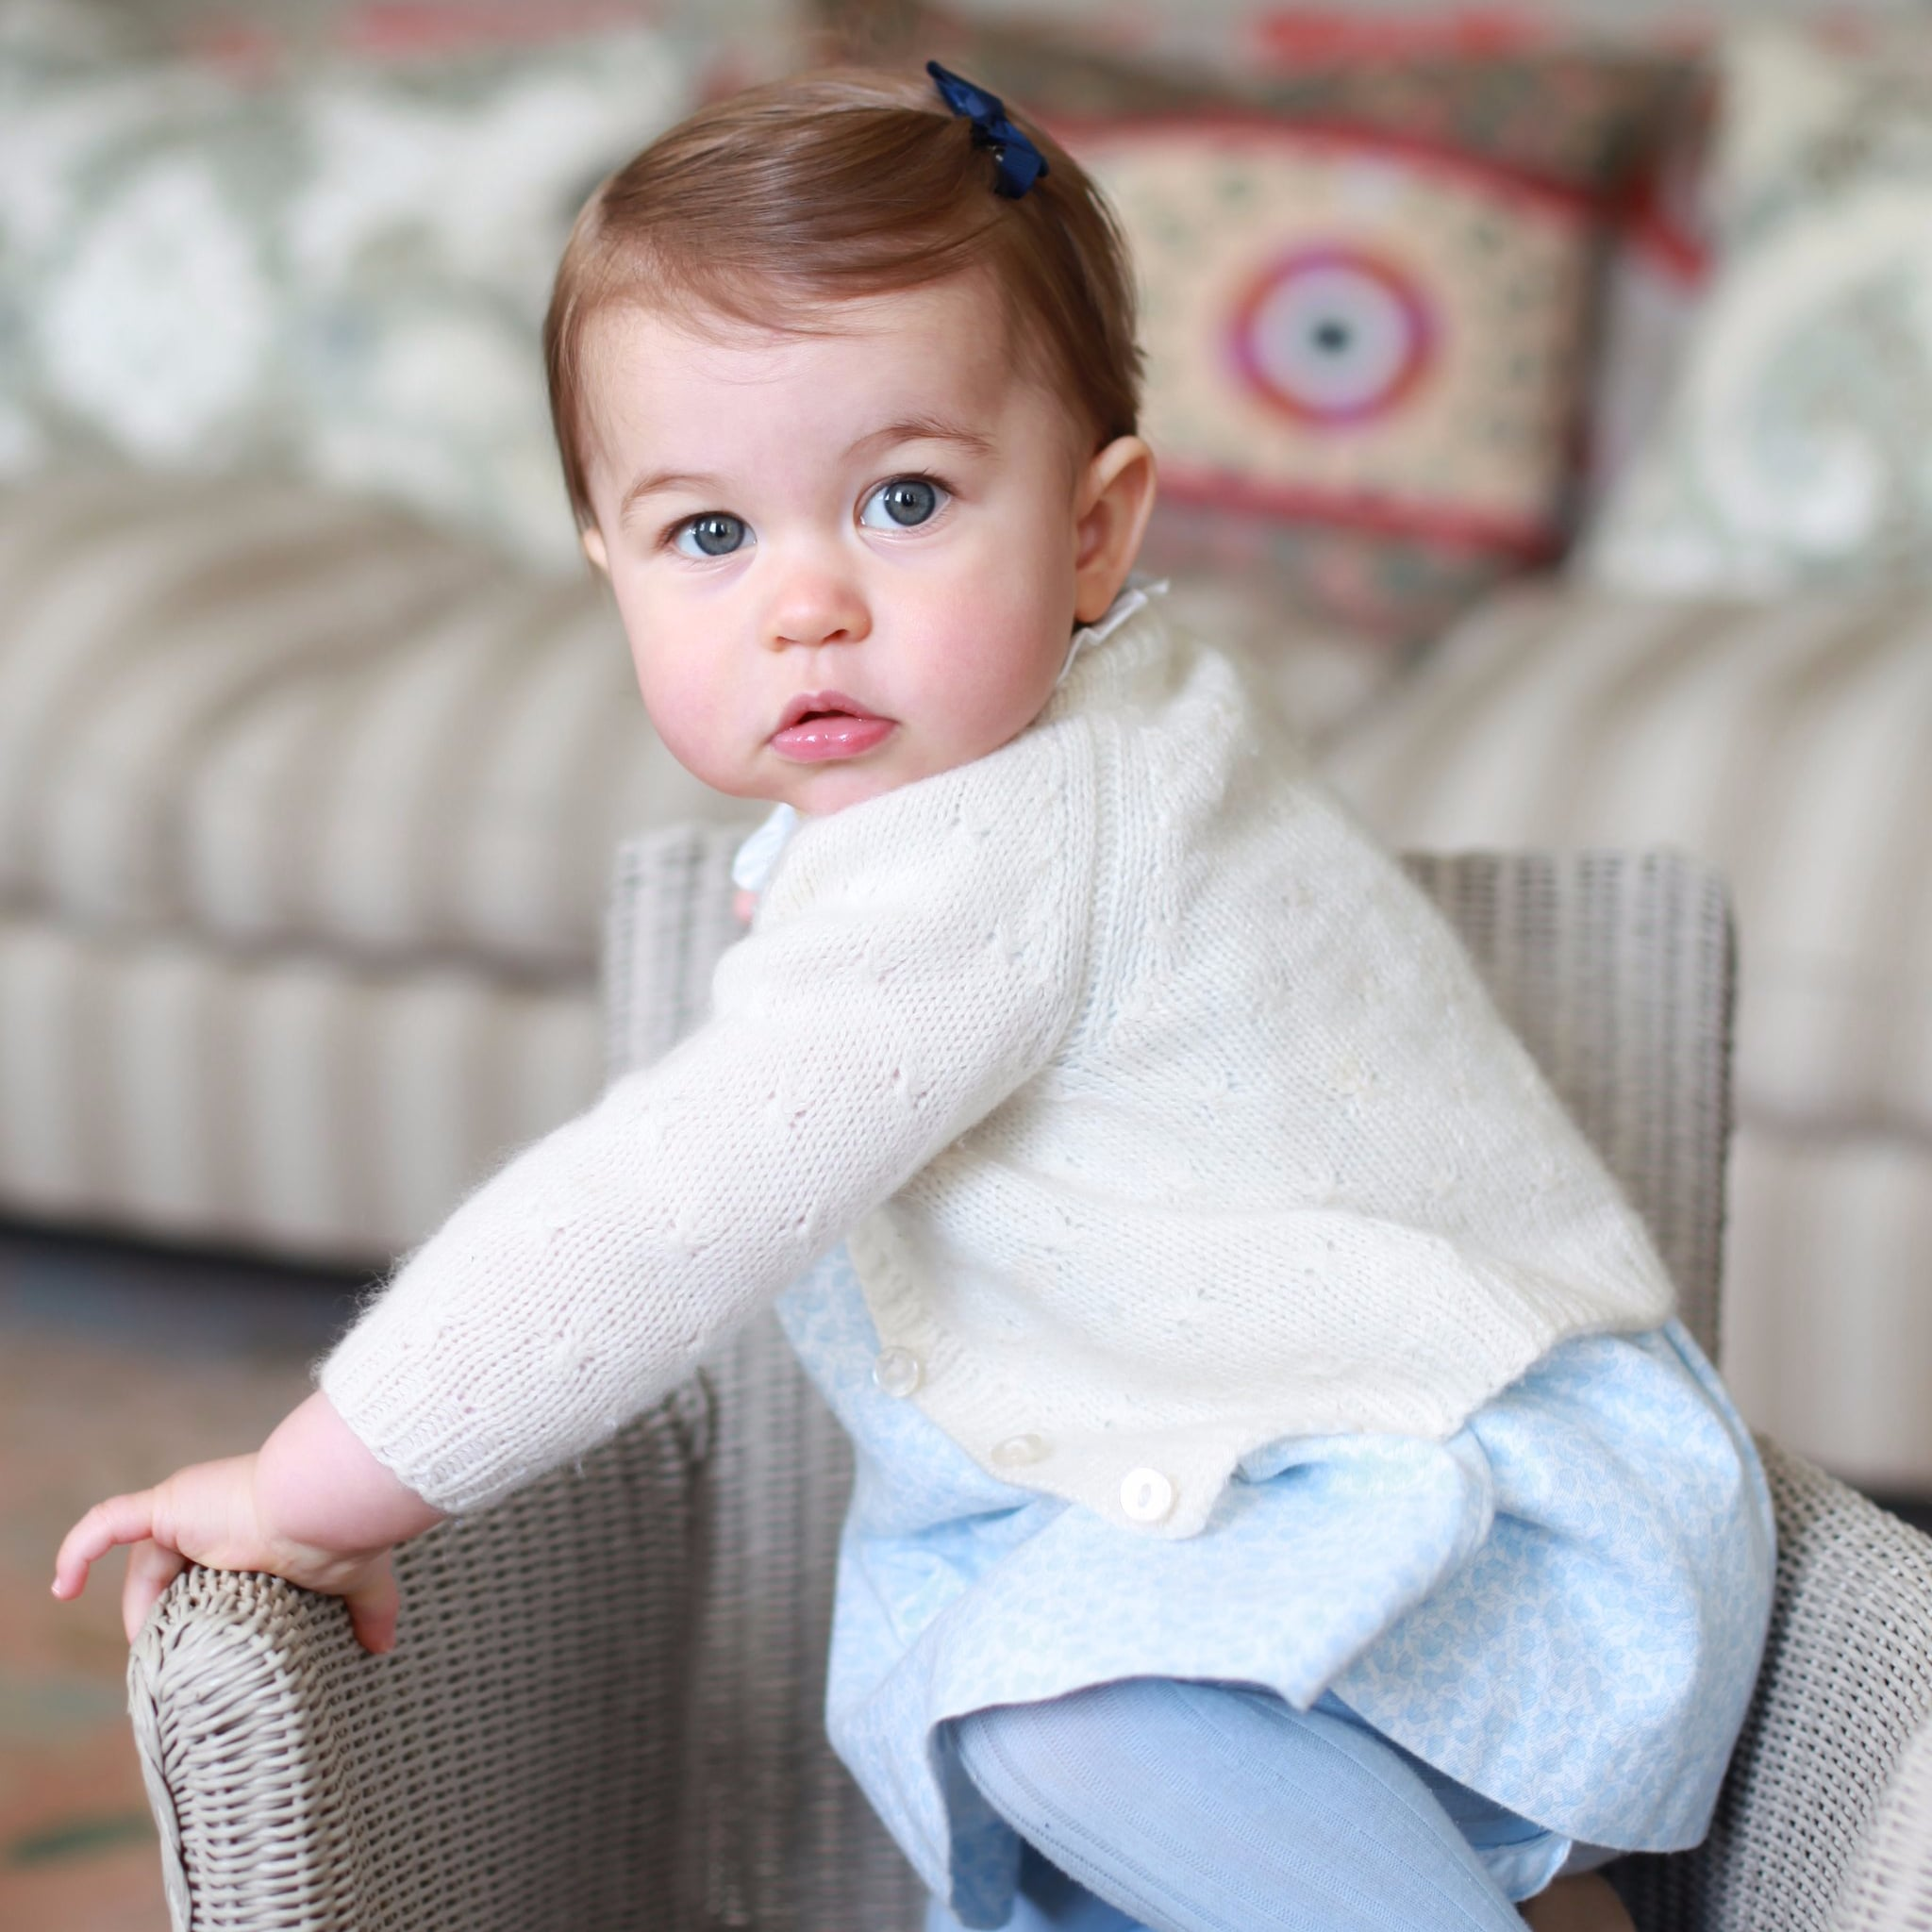 Princess charlotte and queen elizabeth lookalike pictures popsugar celebrity